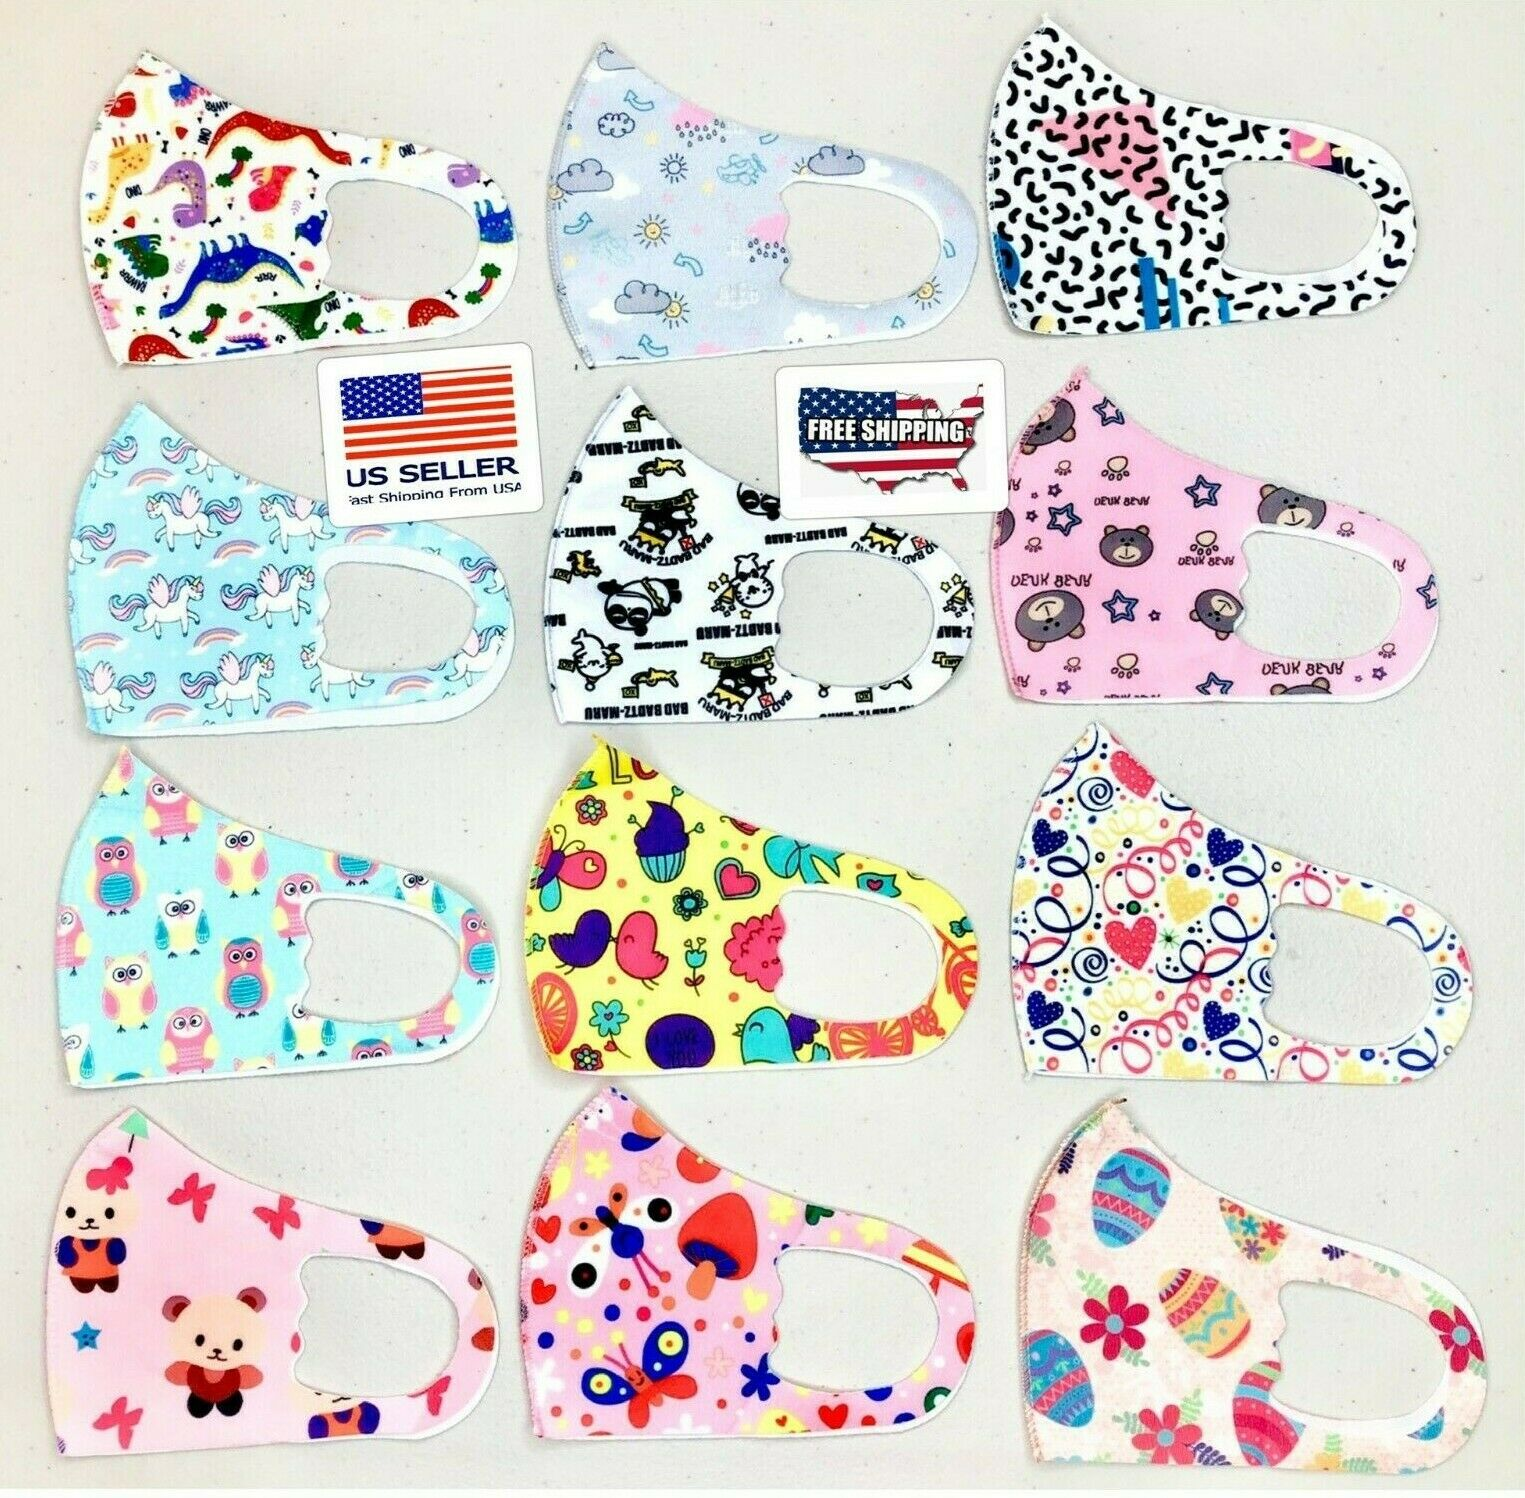 Kids Face Mask, Reusable, Washable, Easy Breath! Cover Mouth & Nose Accessories